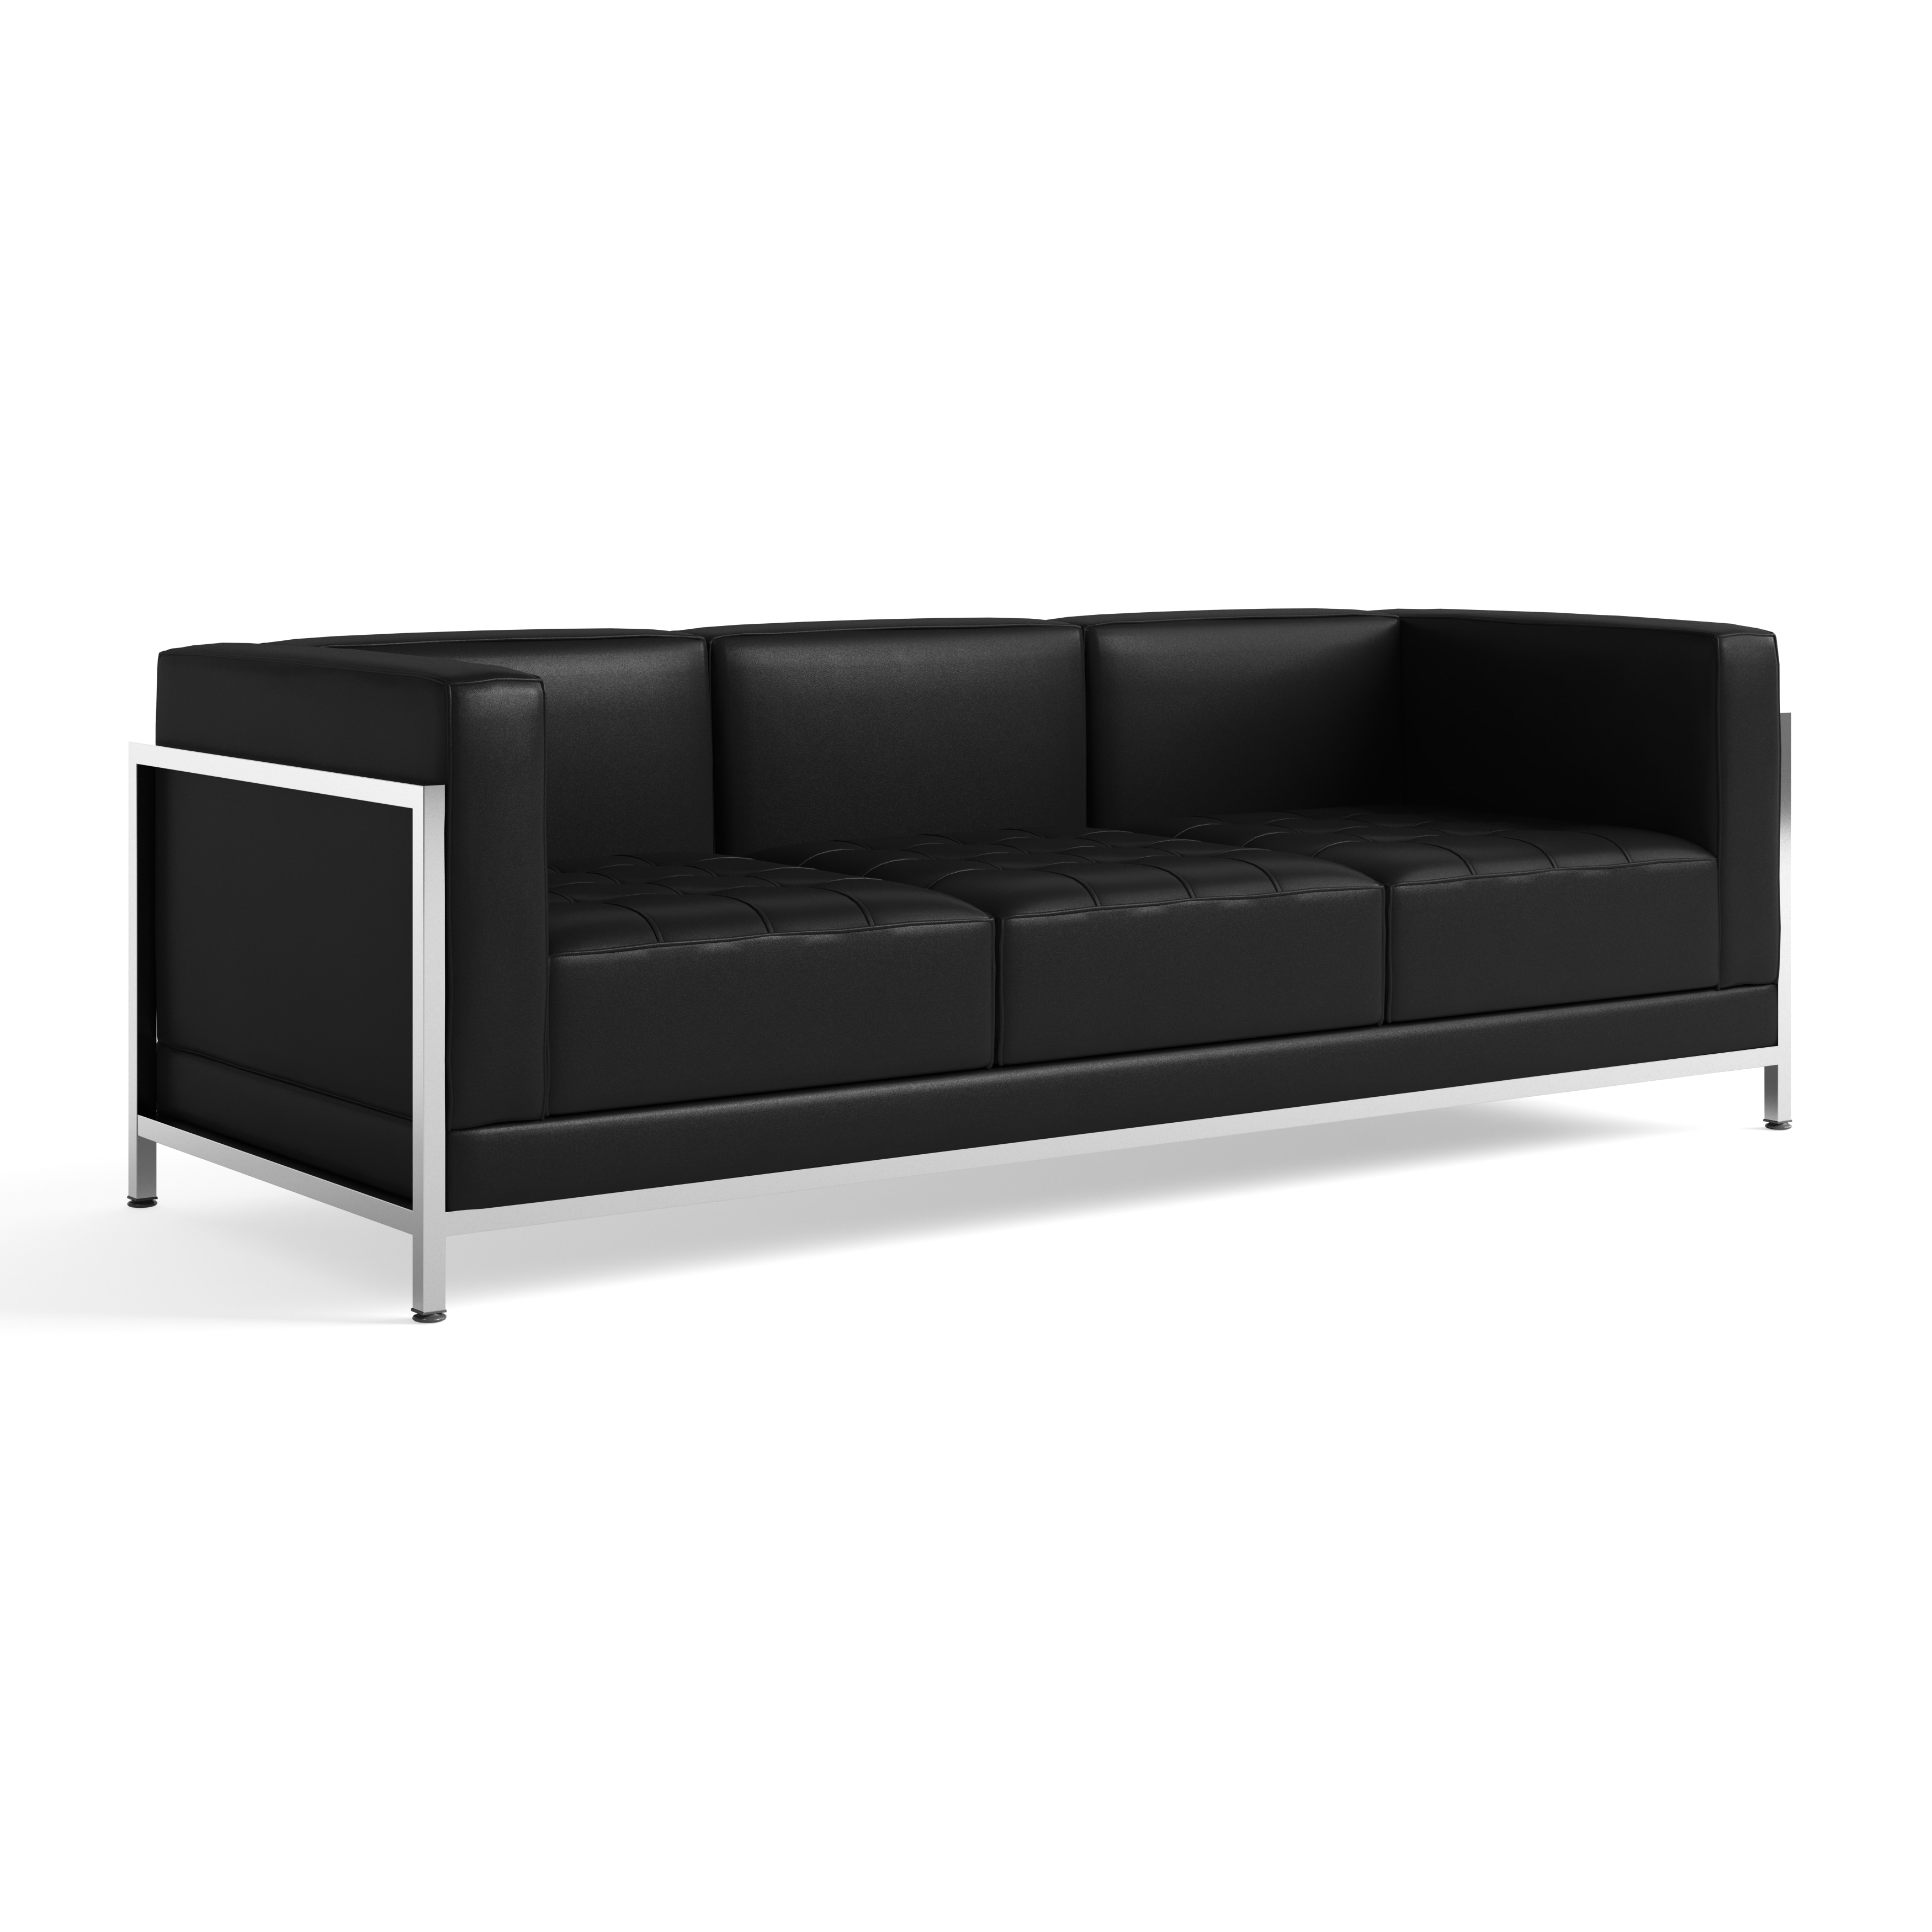 Black Leather Sofas Couches Online At Our Best Living Room Furniture Deals